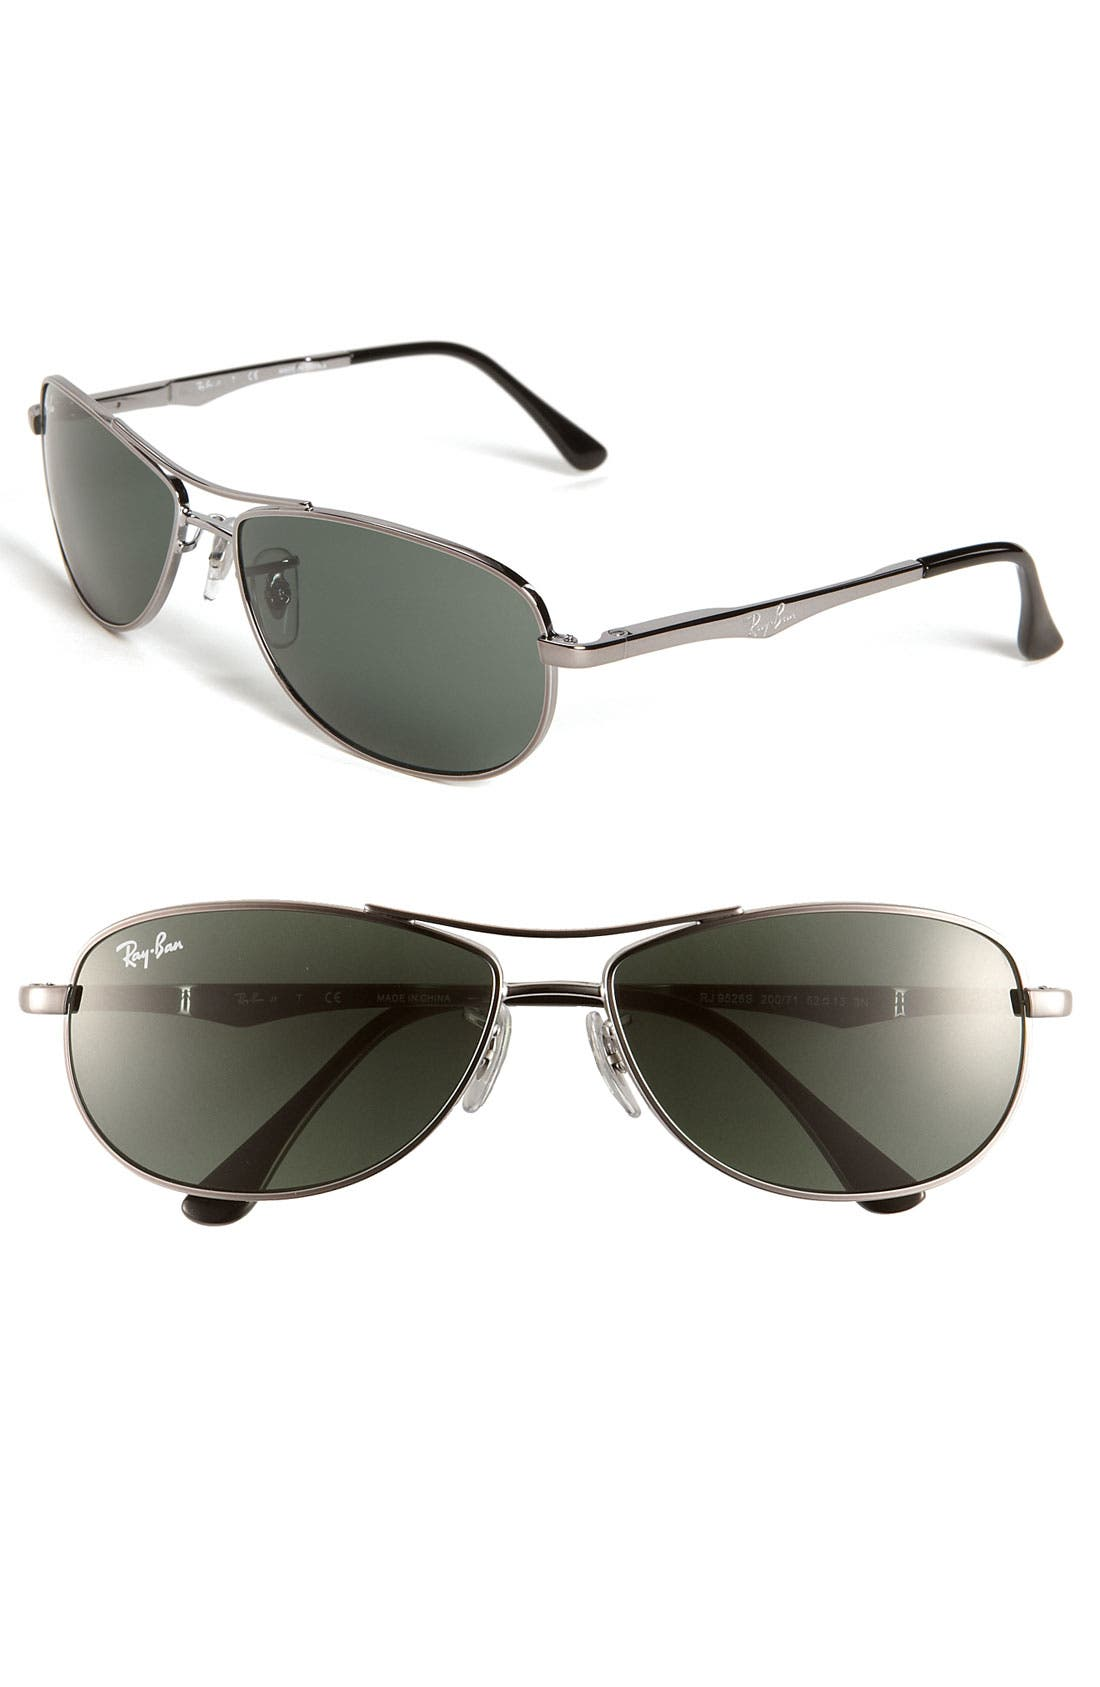 Main Image - Ray-Ban 'Morphed' Aviator 52mm Sunglasses (Big Boys)